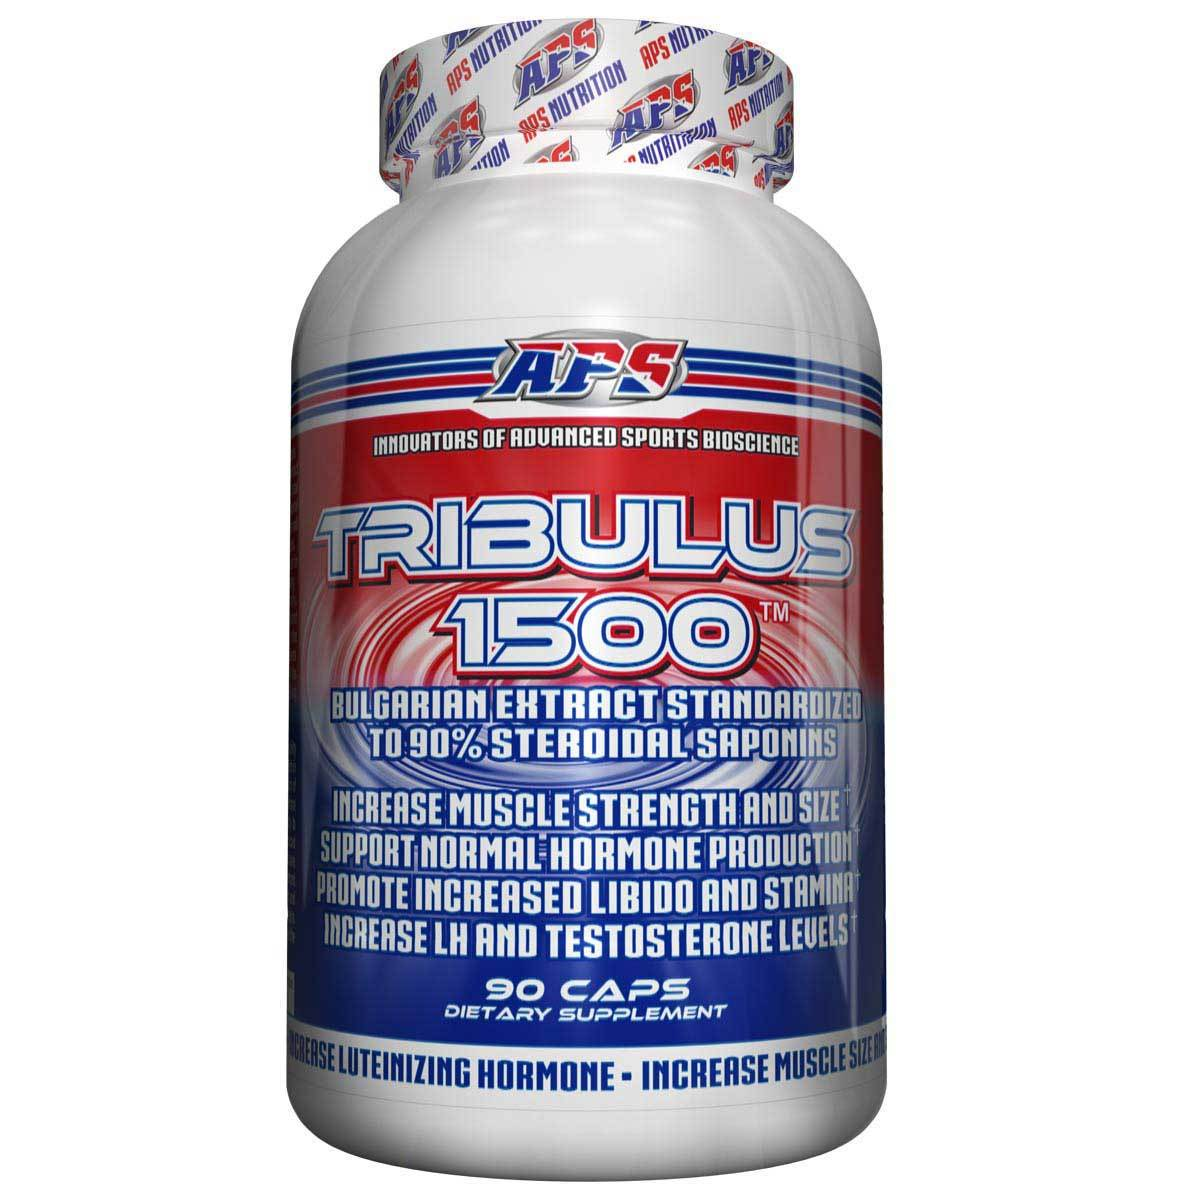 APS Nutrition TRIBULUS 1500 90C Testosterone Boosters APS Nutrition  (1059304800299)